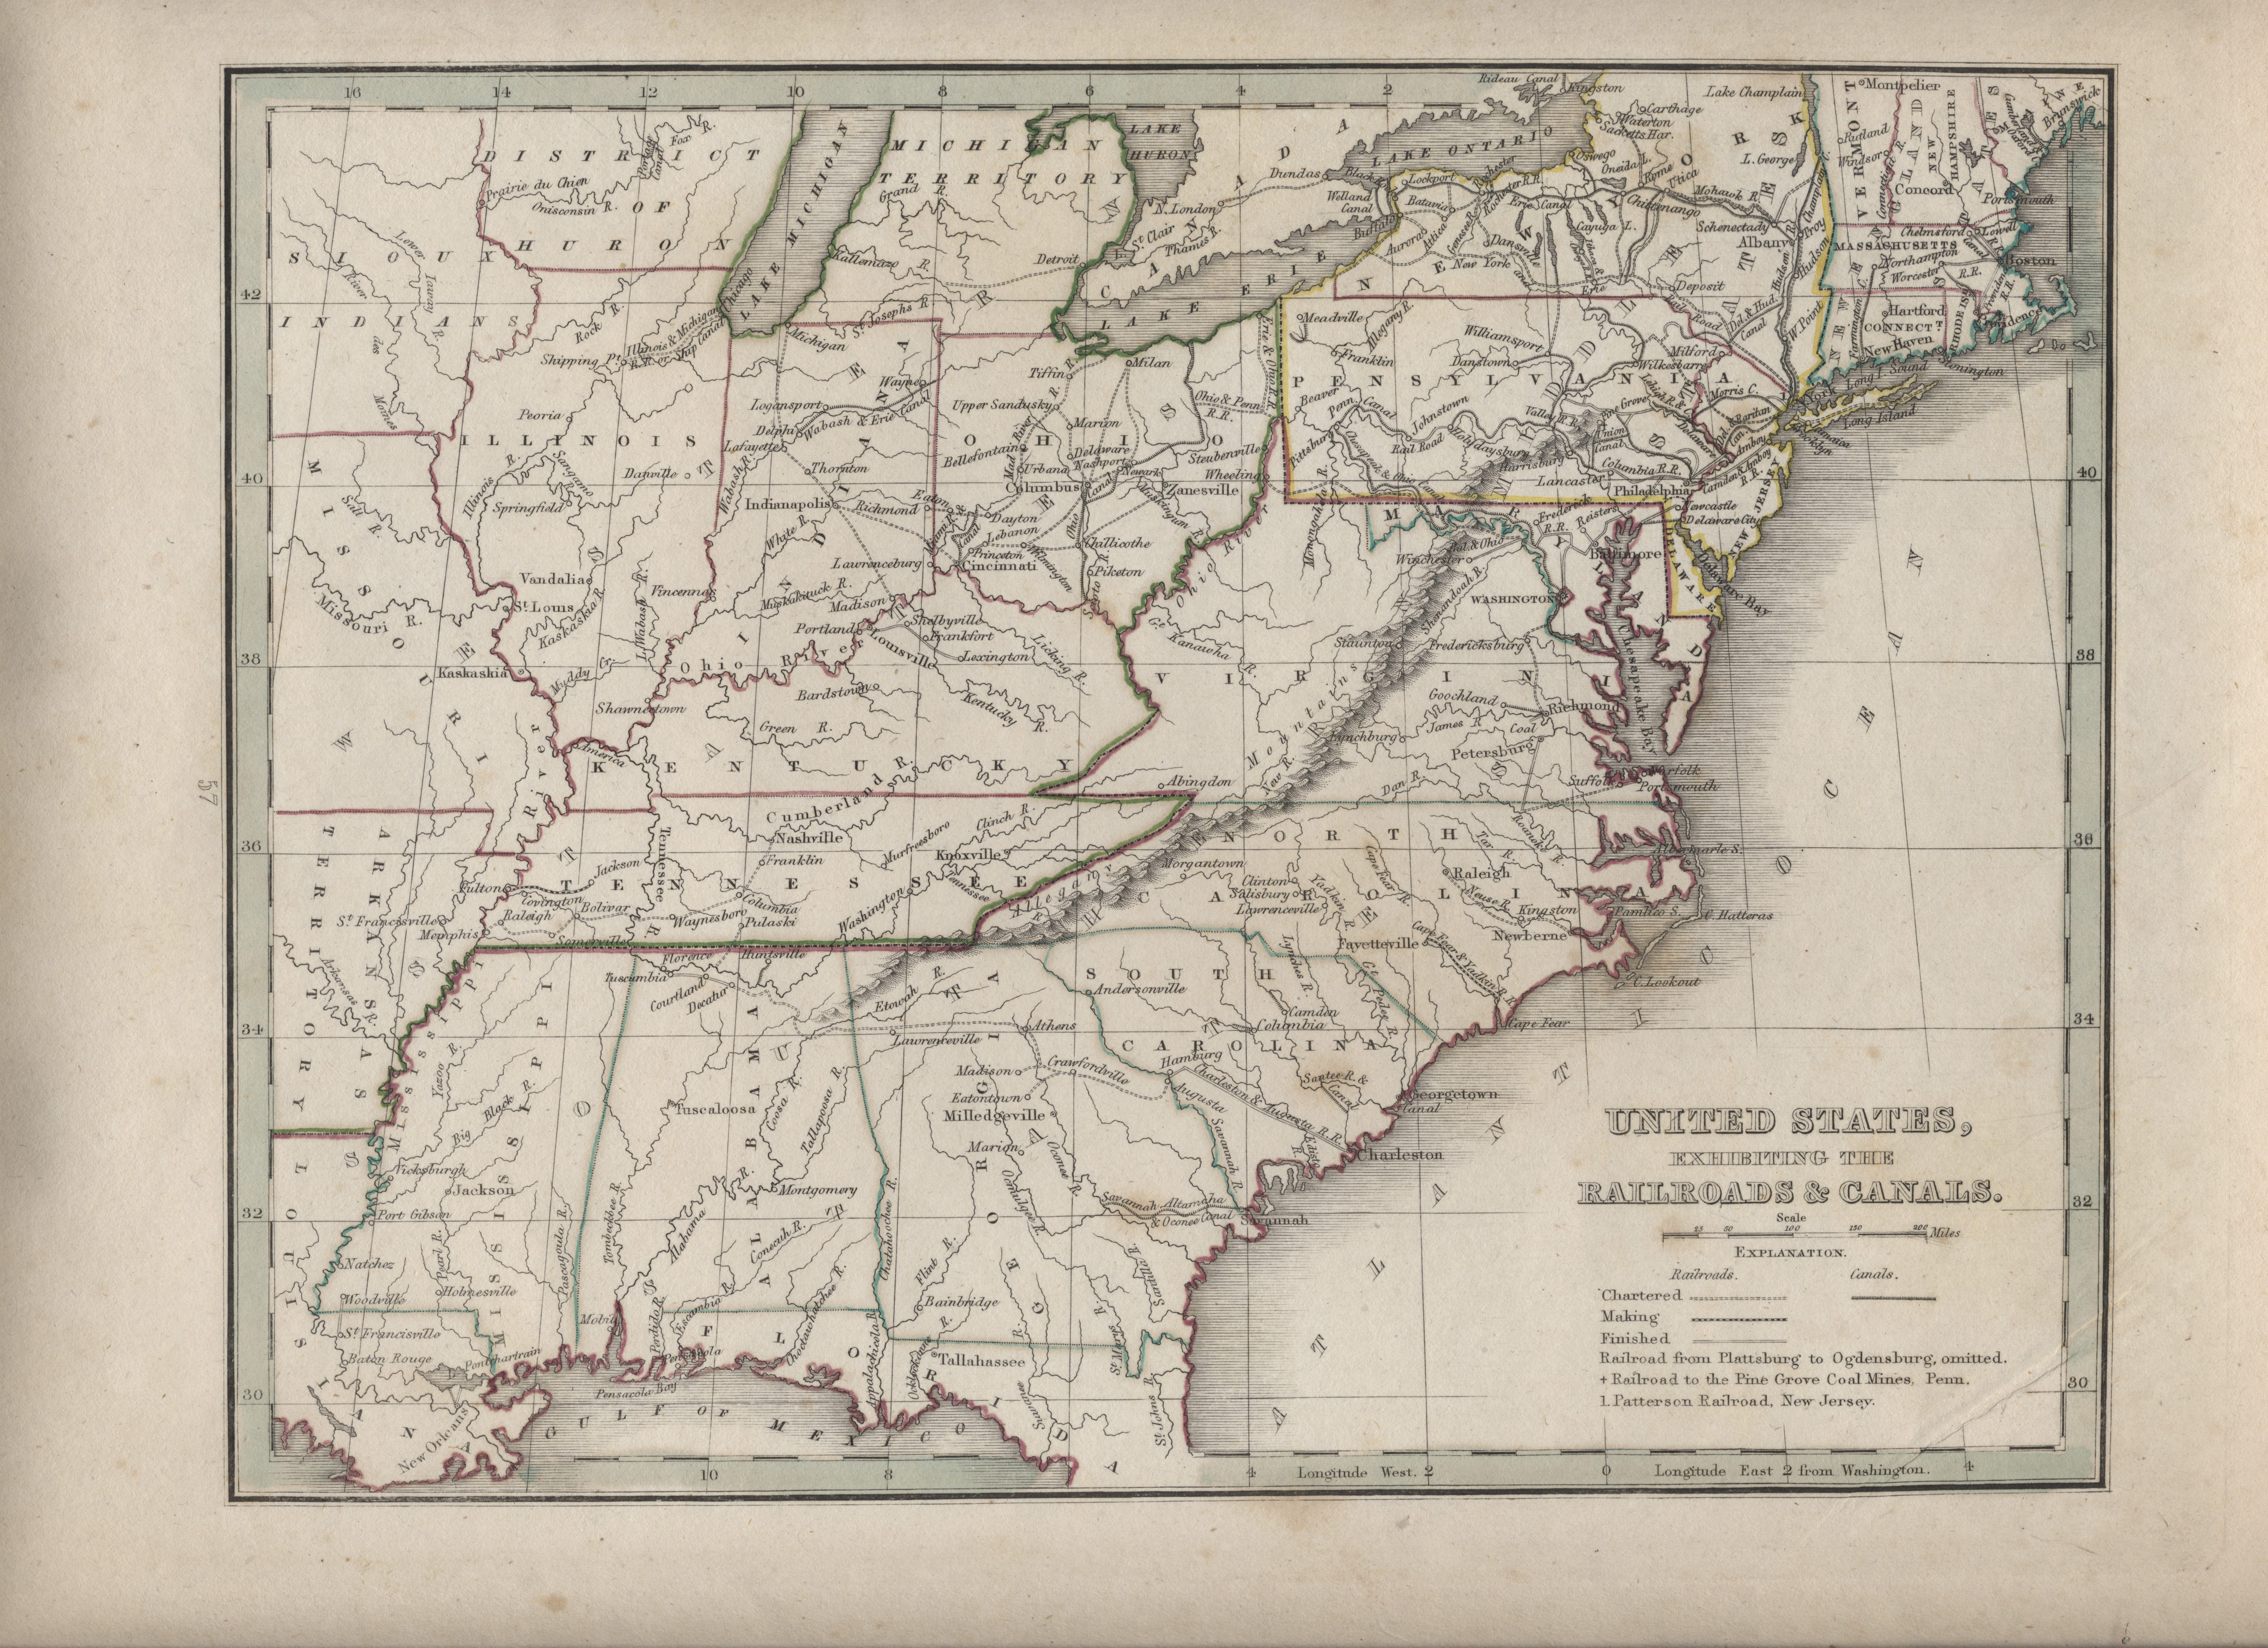 LJTP 500.007 - Comprehensive Atlas Geographical, Historical and Commercial - United States Exhibiting the Railroads and Canals - 1835